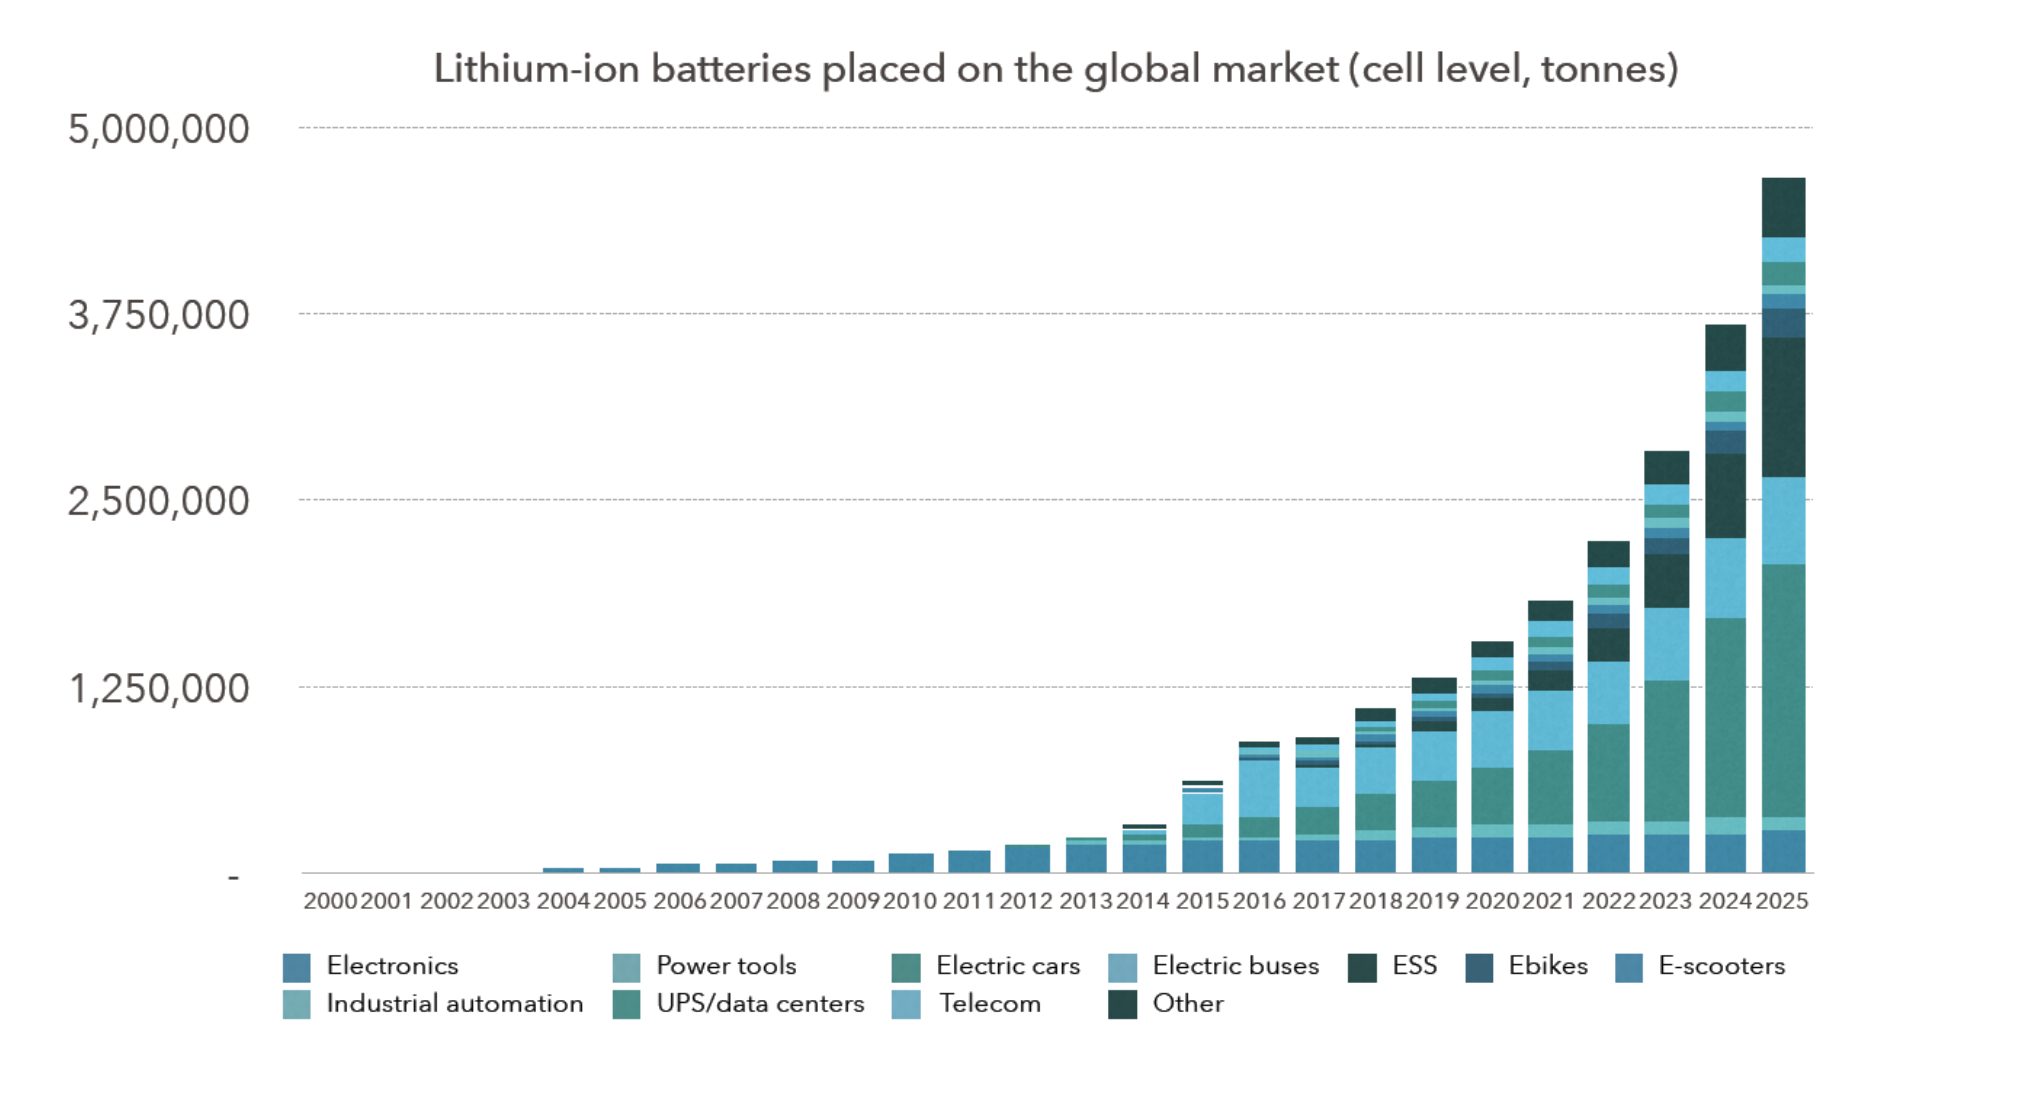 Global battery output is predicted to more than triple by 2025